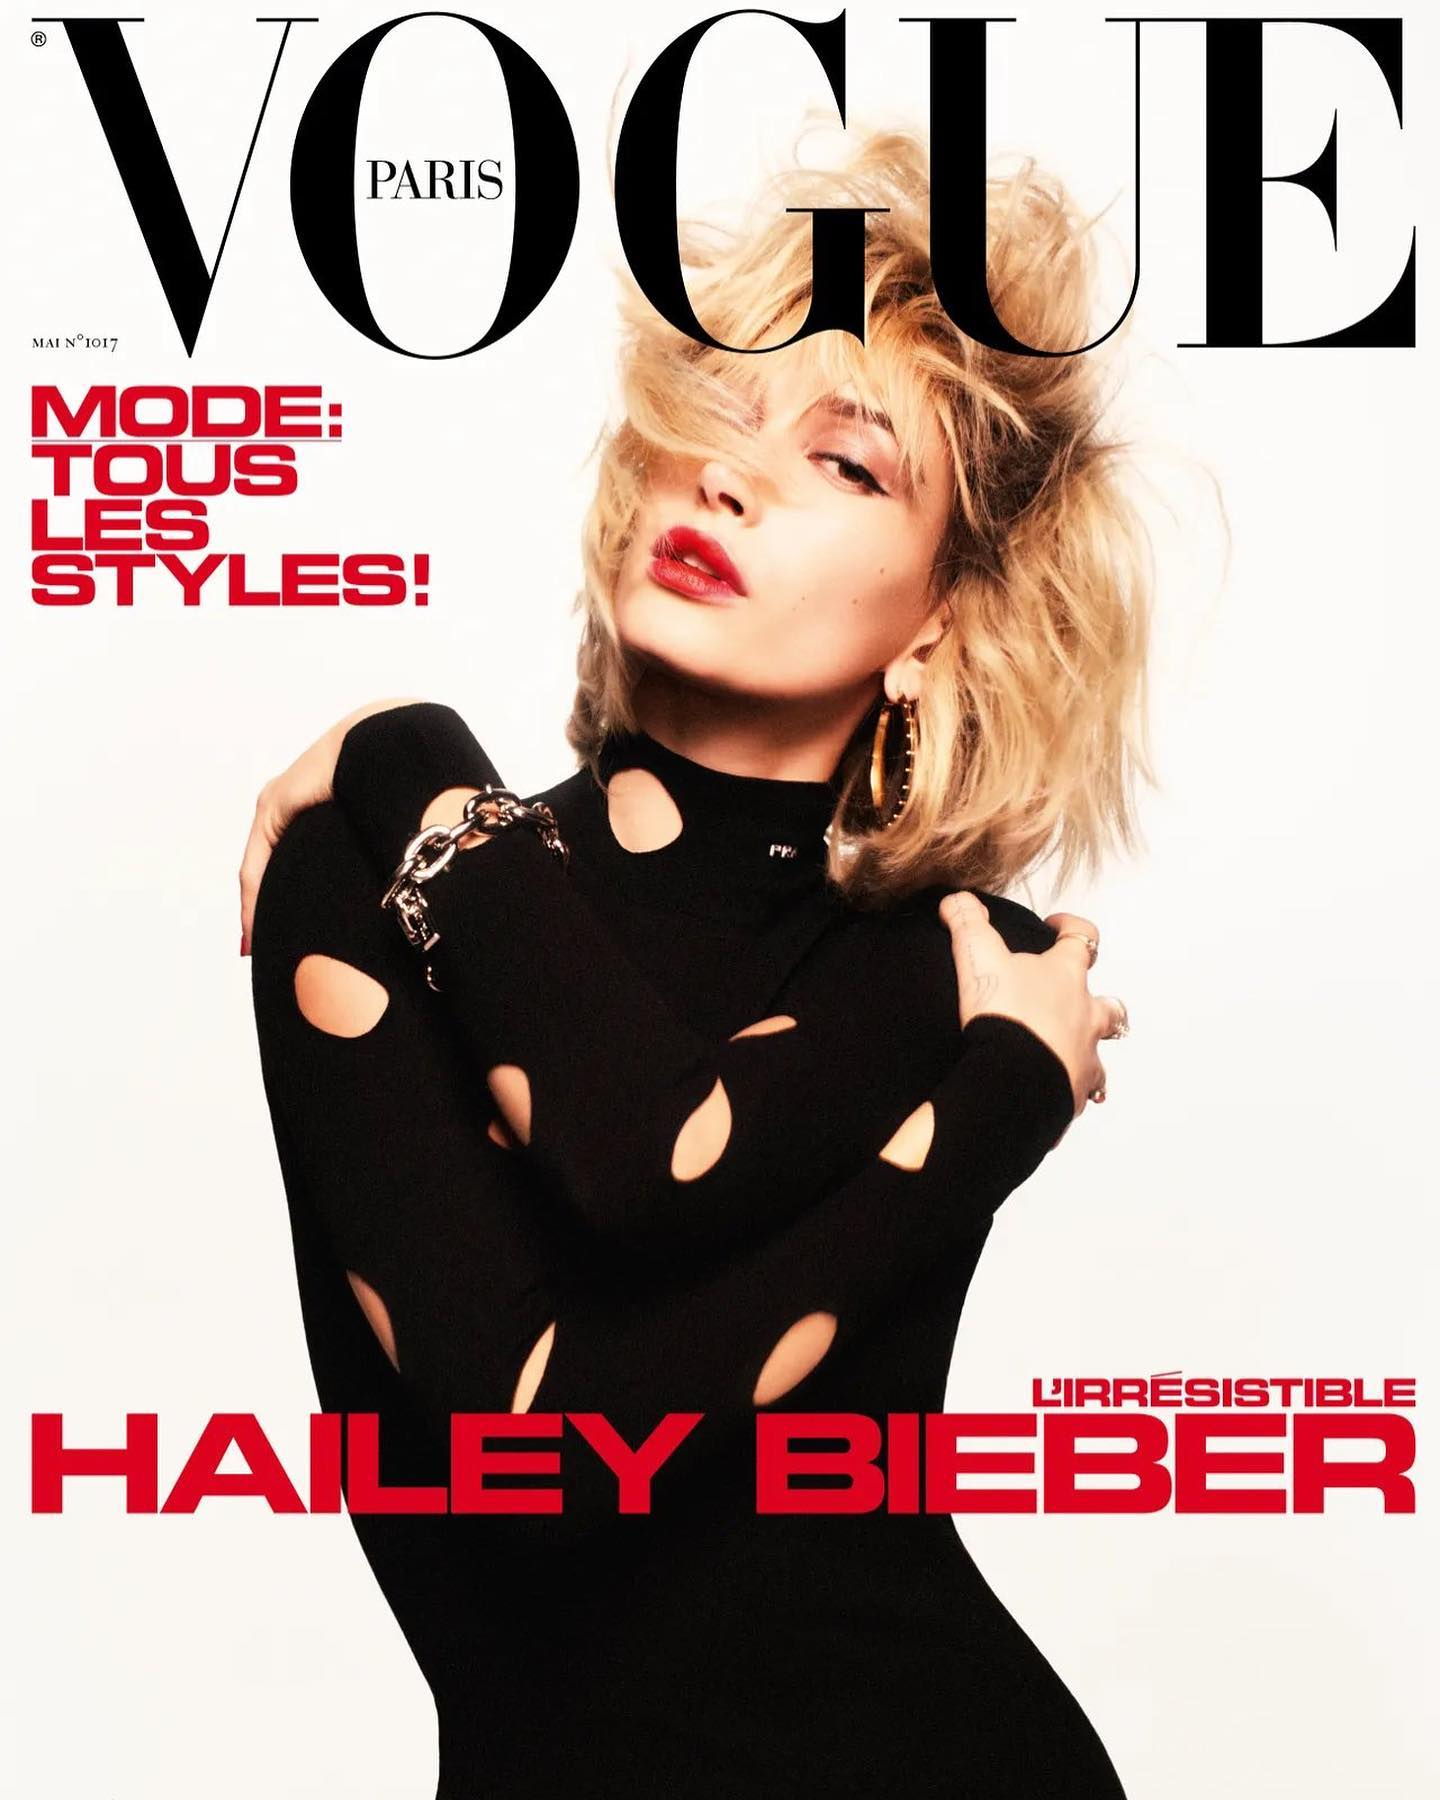 Hailey Bieber covers Vogue Paris May 2021